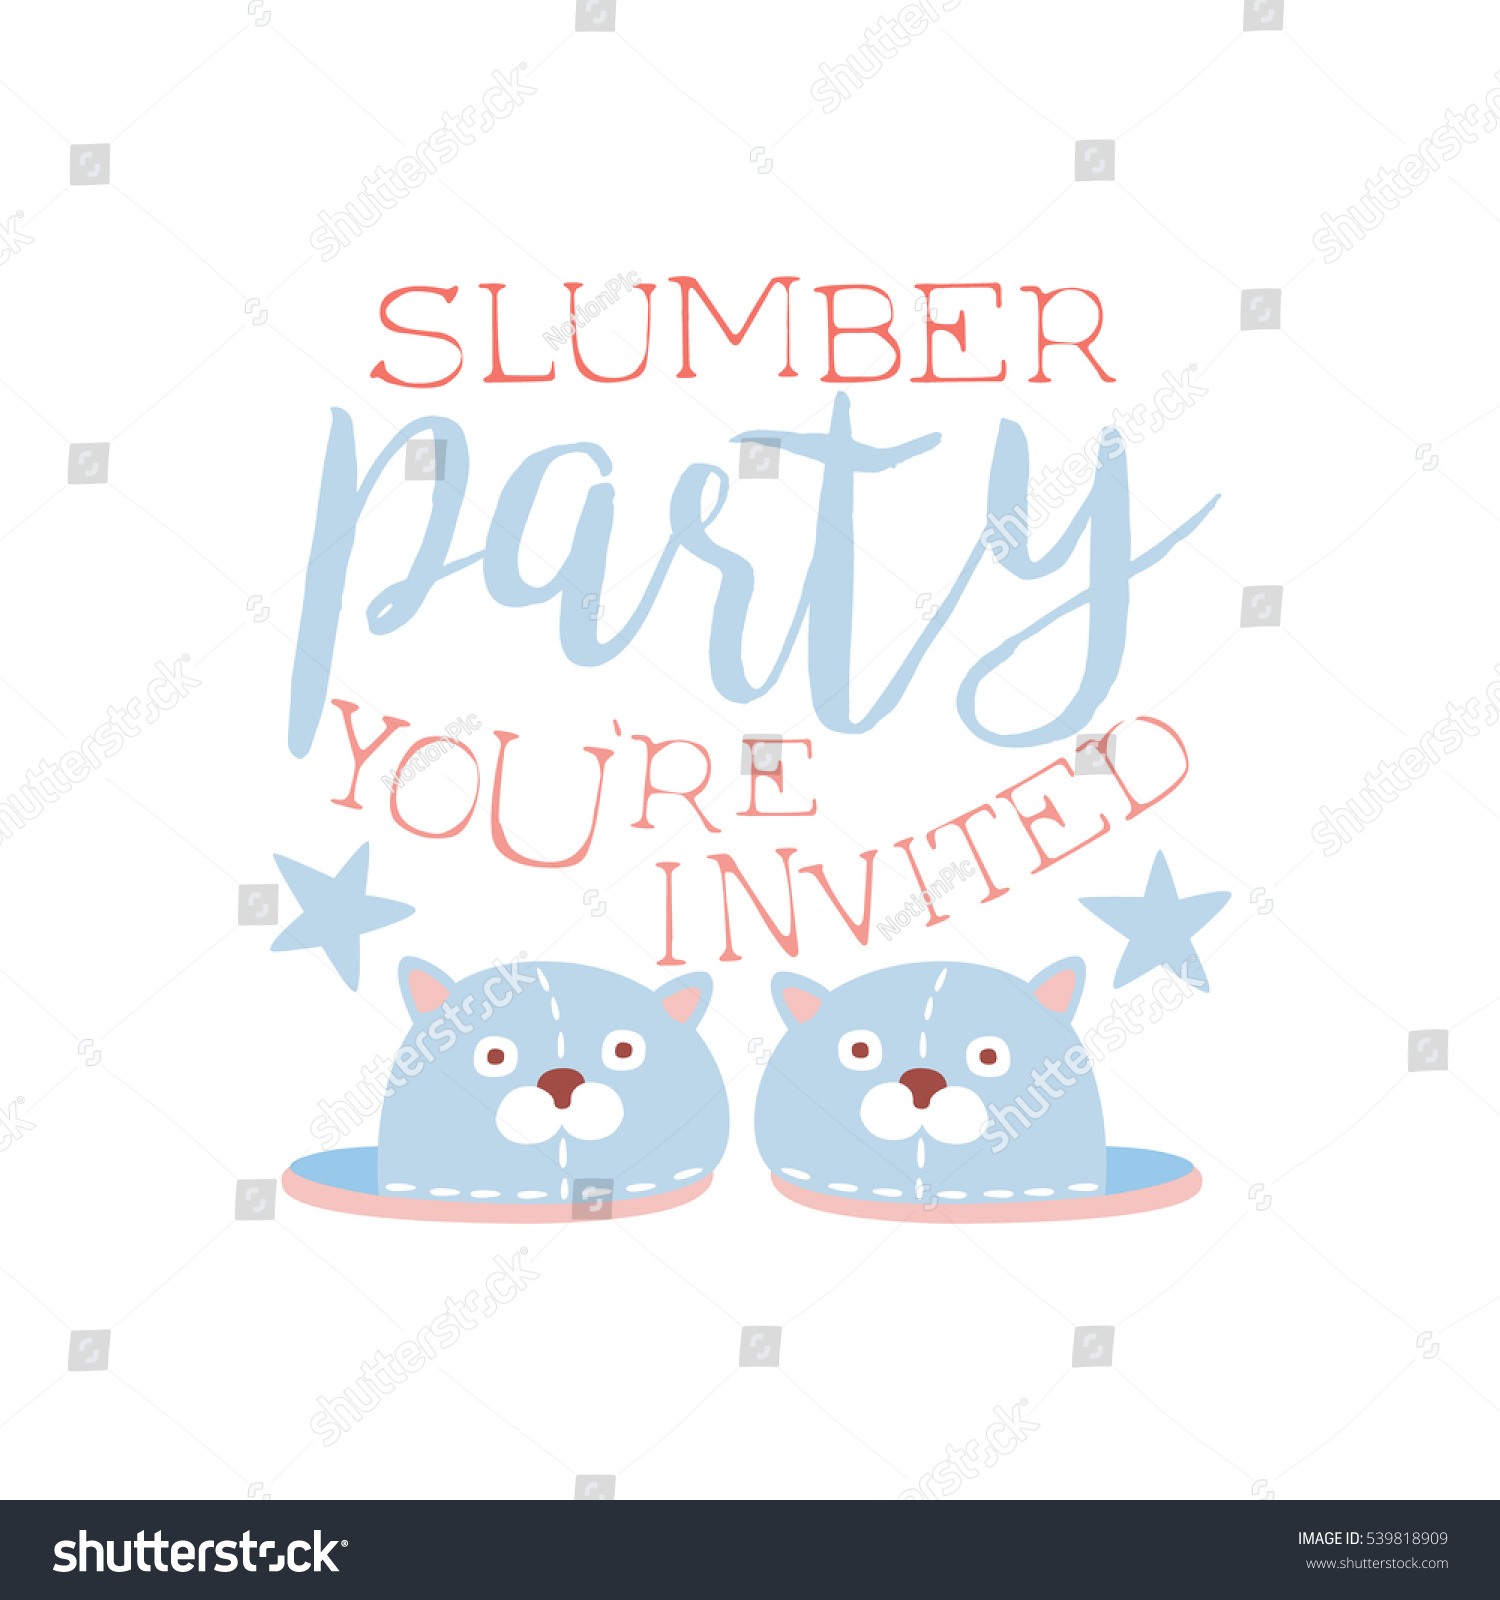 Girly Pajama Party Invitation Card Template Stock Vector HD (Royalty ...